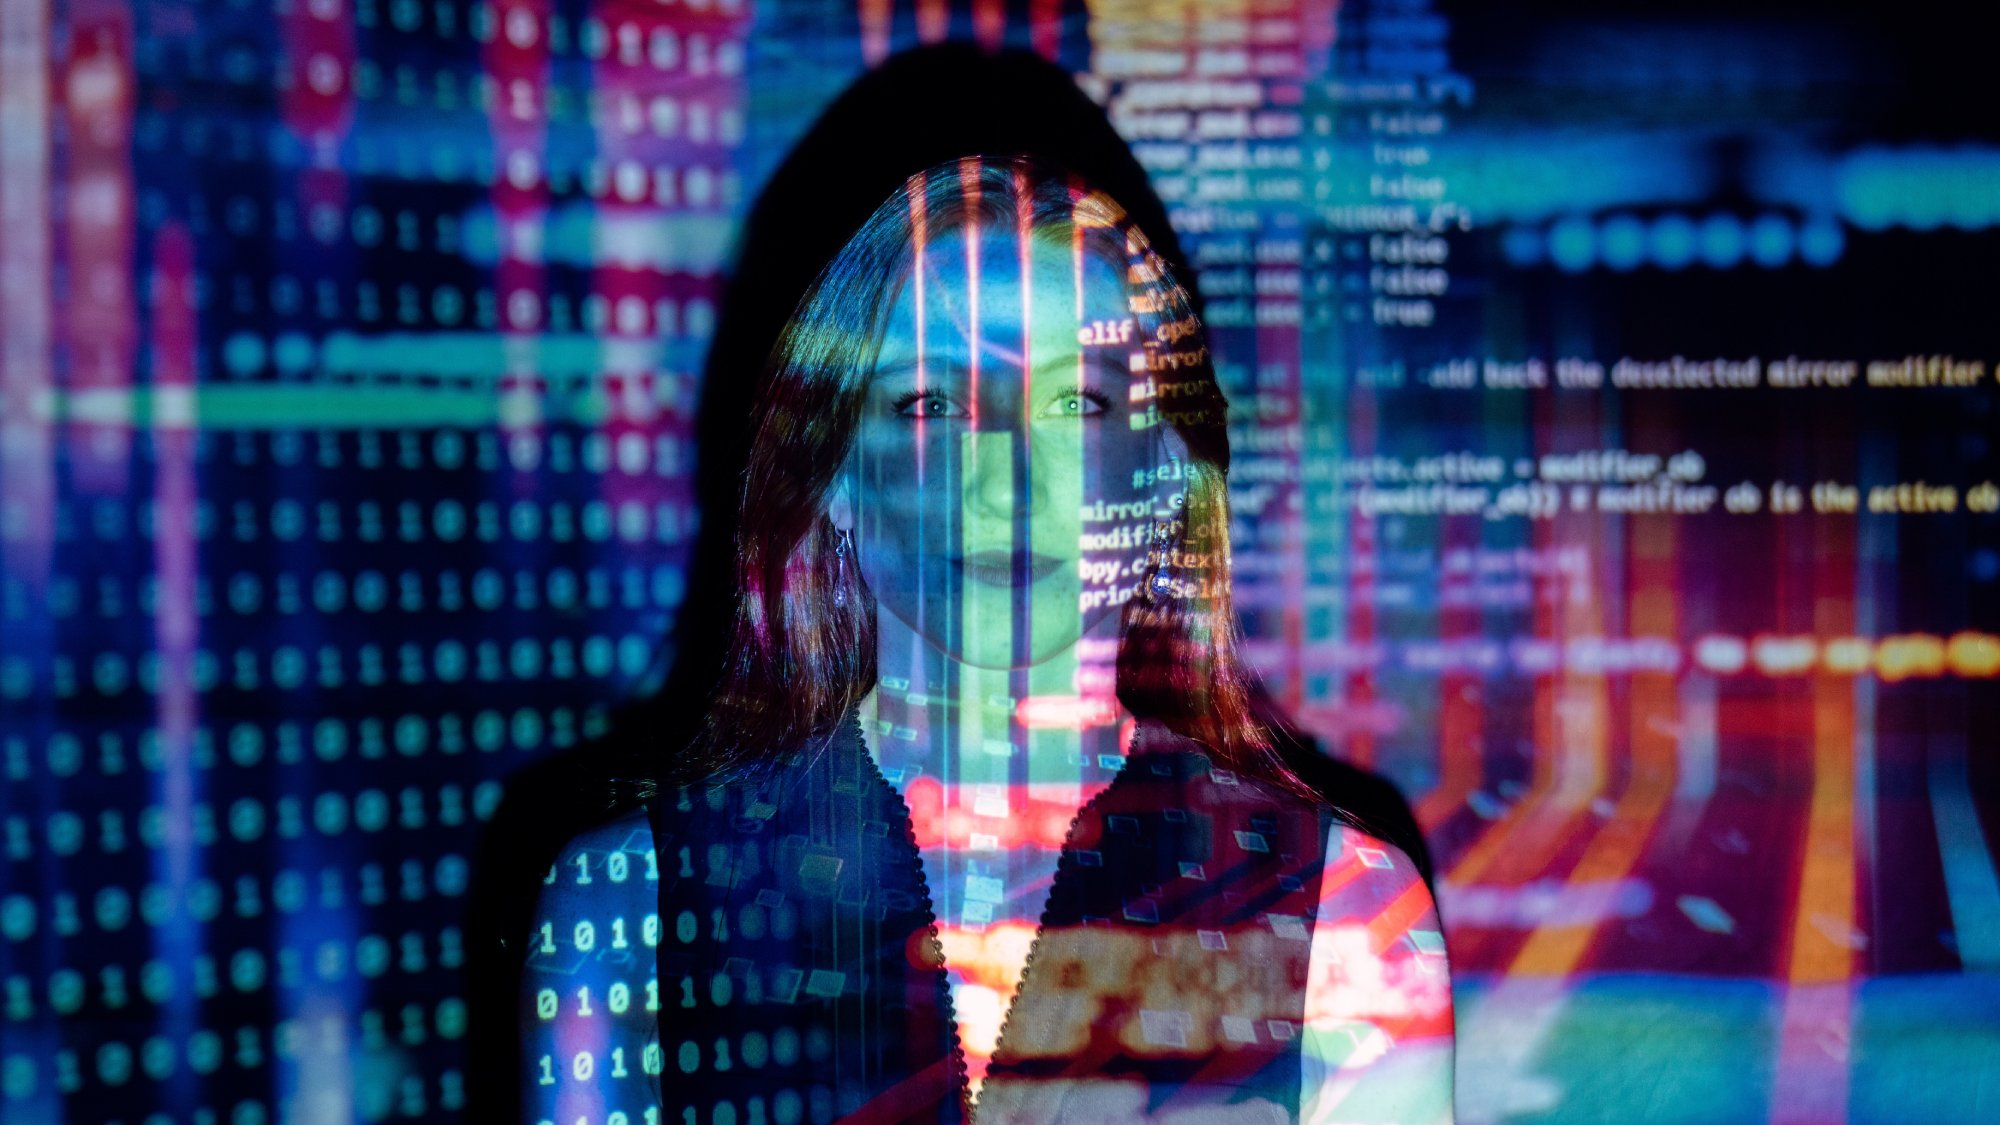 Code projected over woman